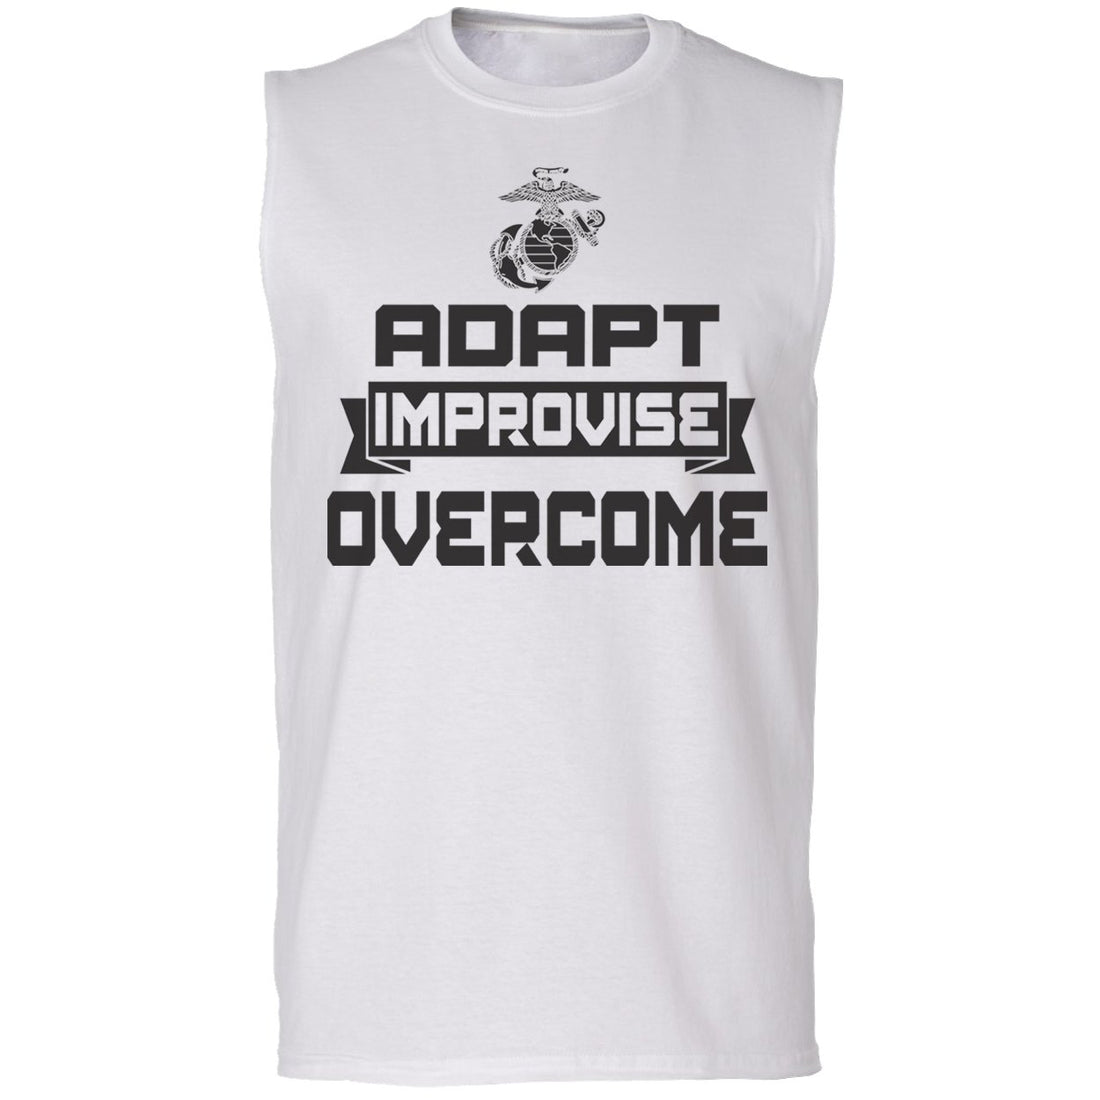 Adapt, Improvise, Overcome Sleeveless